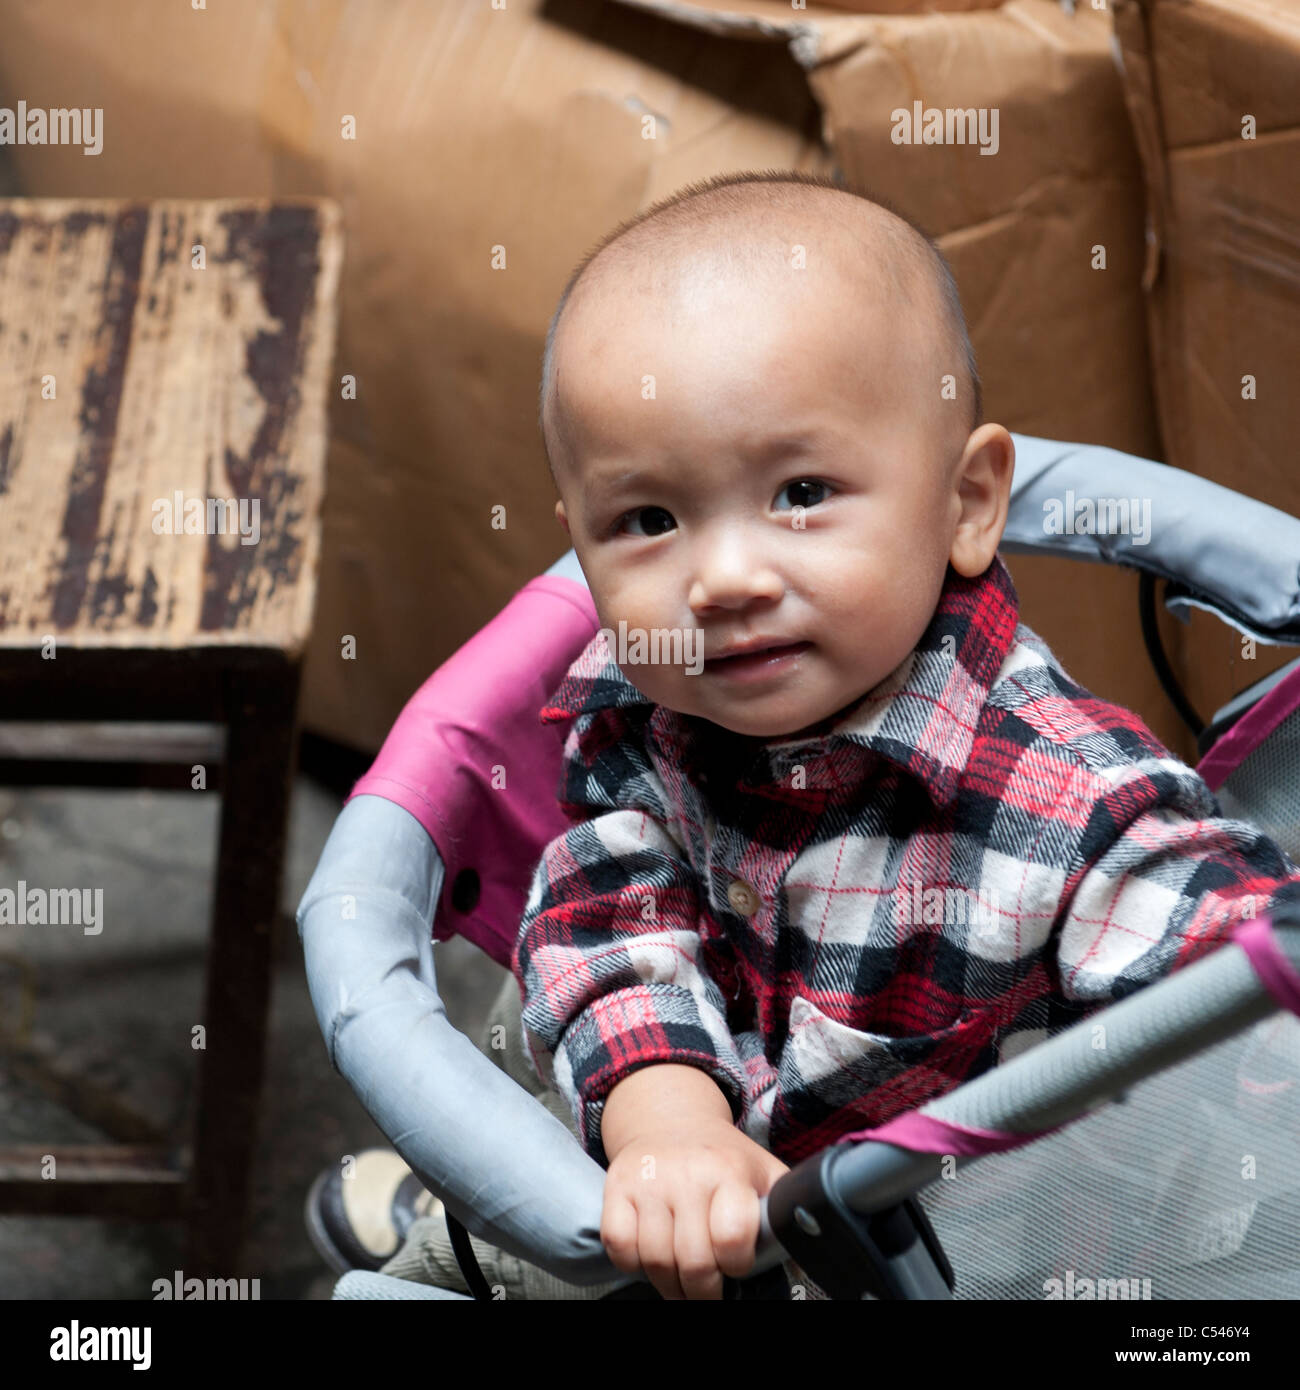 Portrait of a baby boy, Shanghai, China - Stock Image